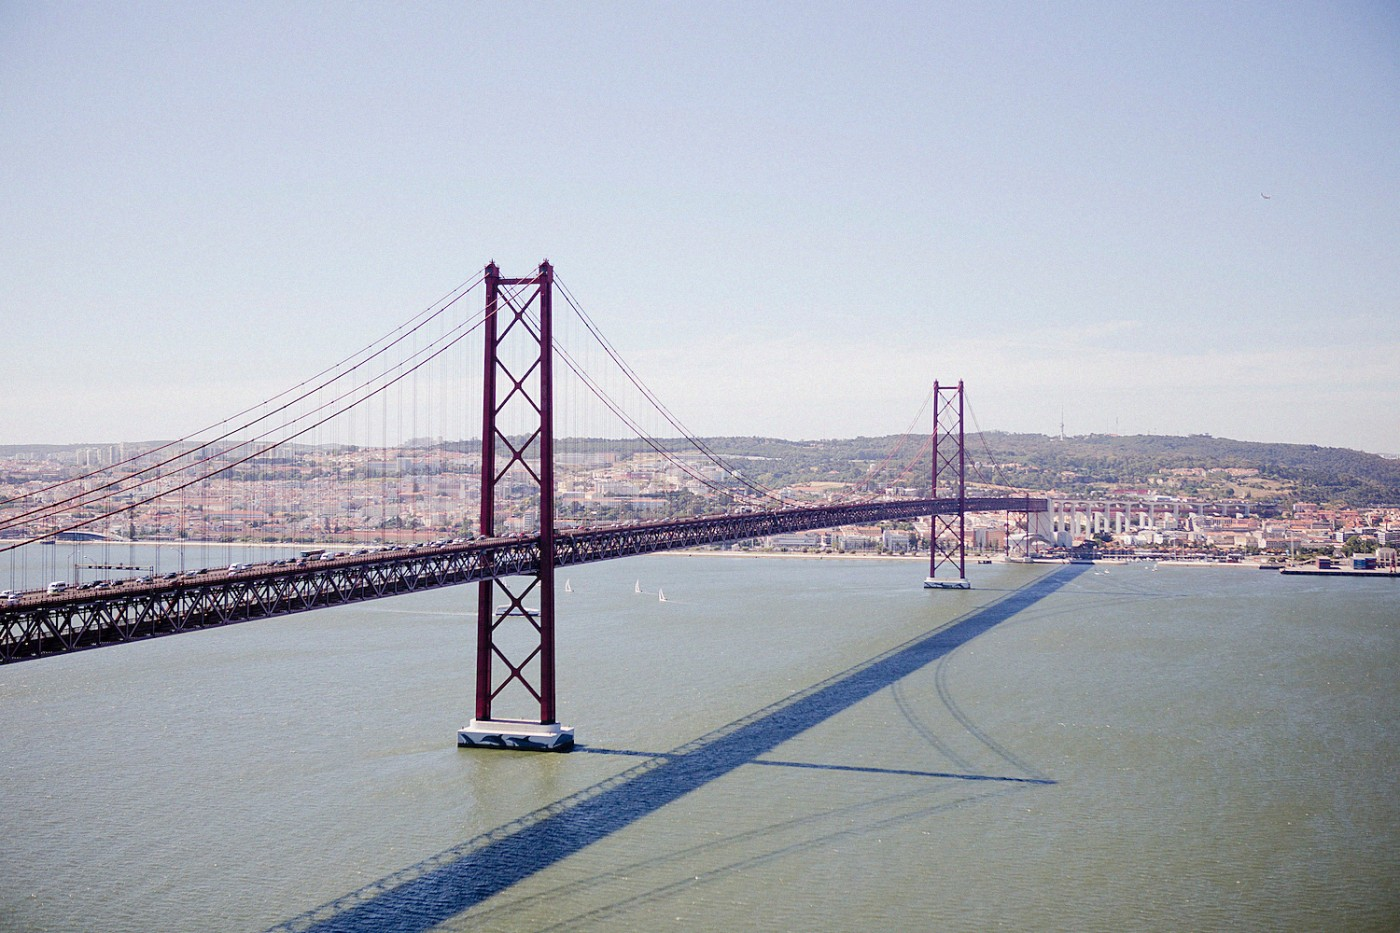 lisbon guide _ what to do in lisbon _ sightseeing lissabon23